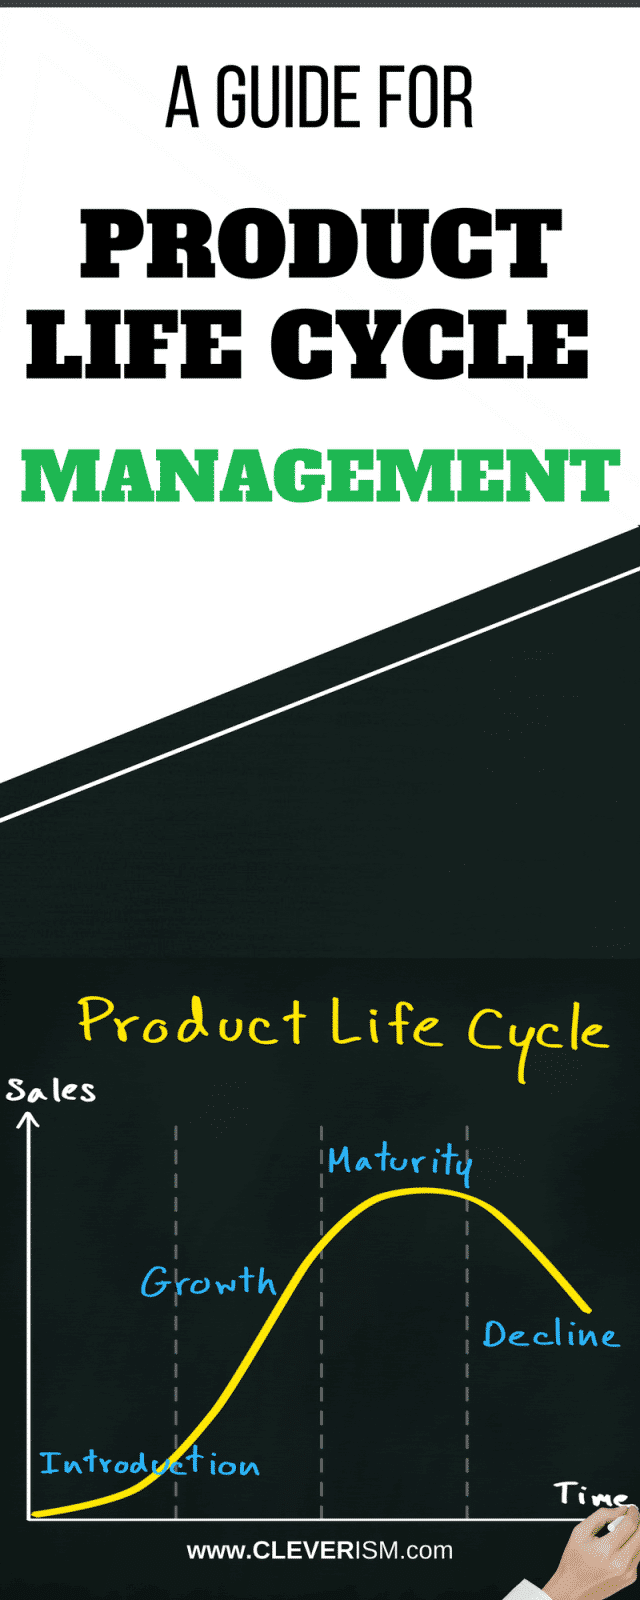 Revenue Cycle Management Company Manual Guide